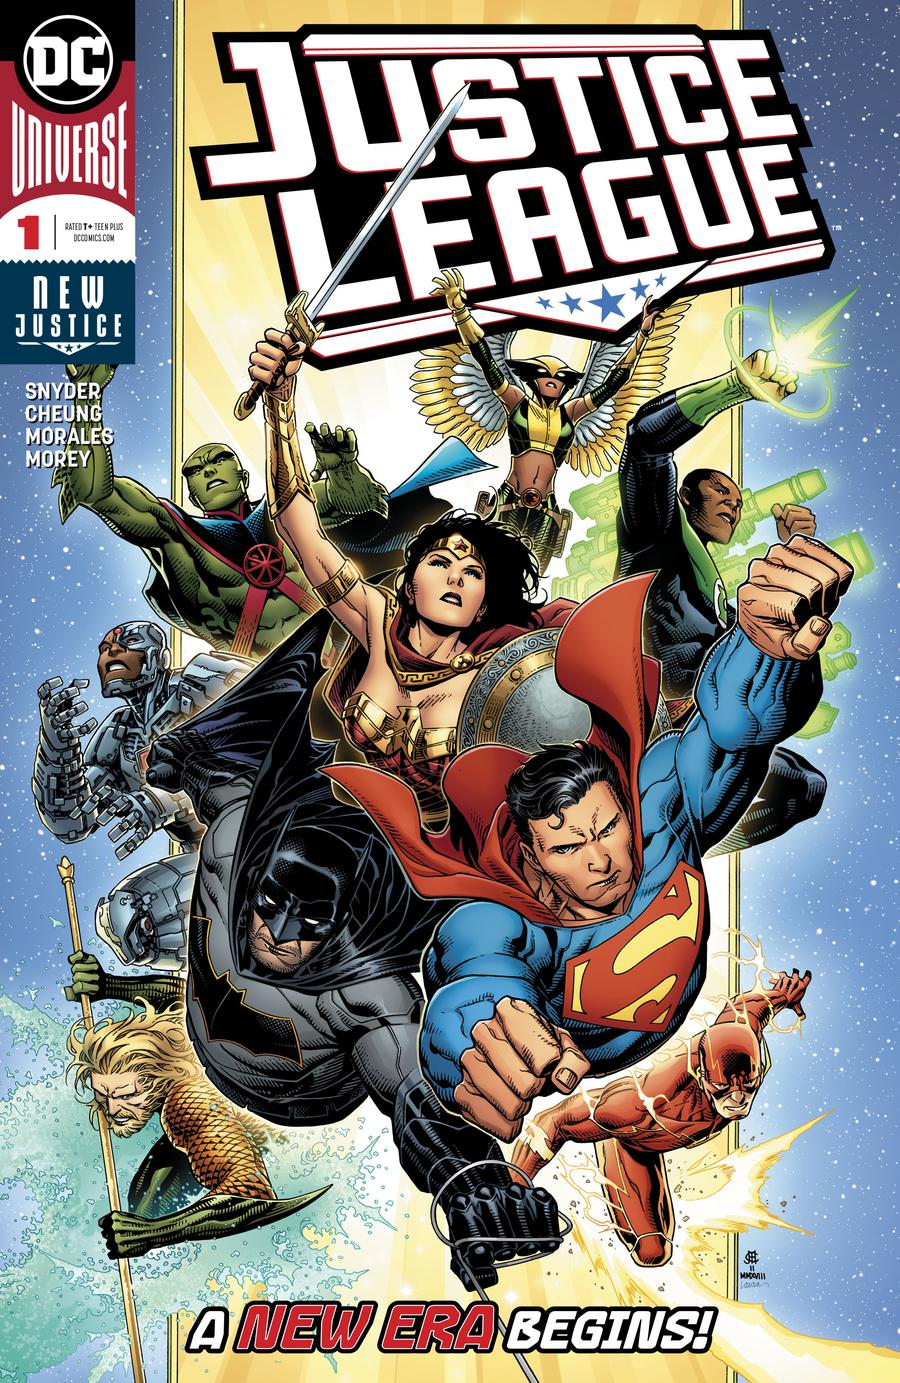 Justice League Vol 4 #1 Cover A Regular Jim Cheung Cover